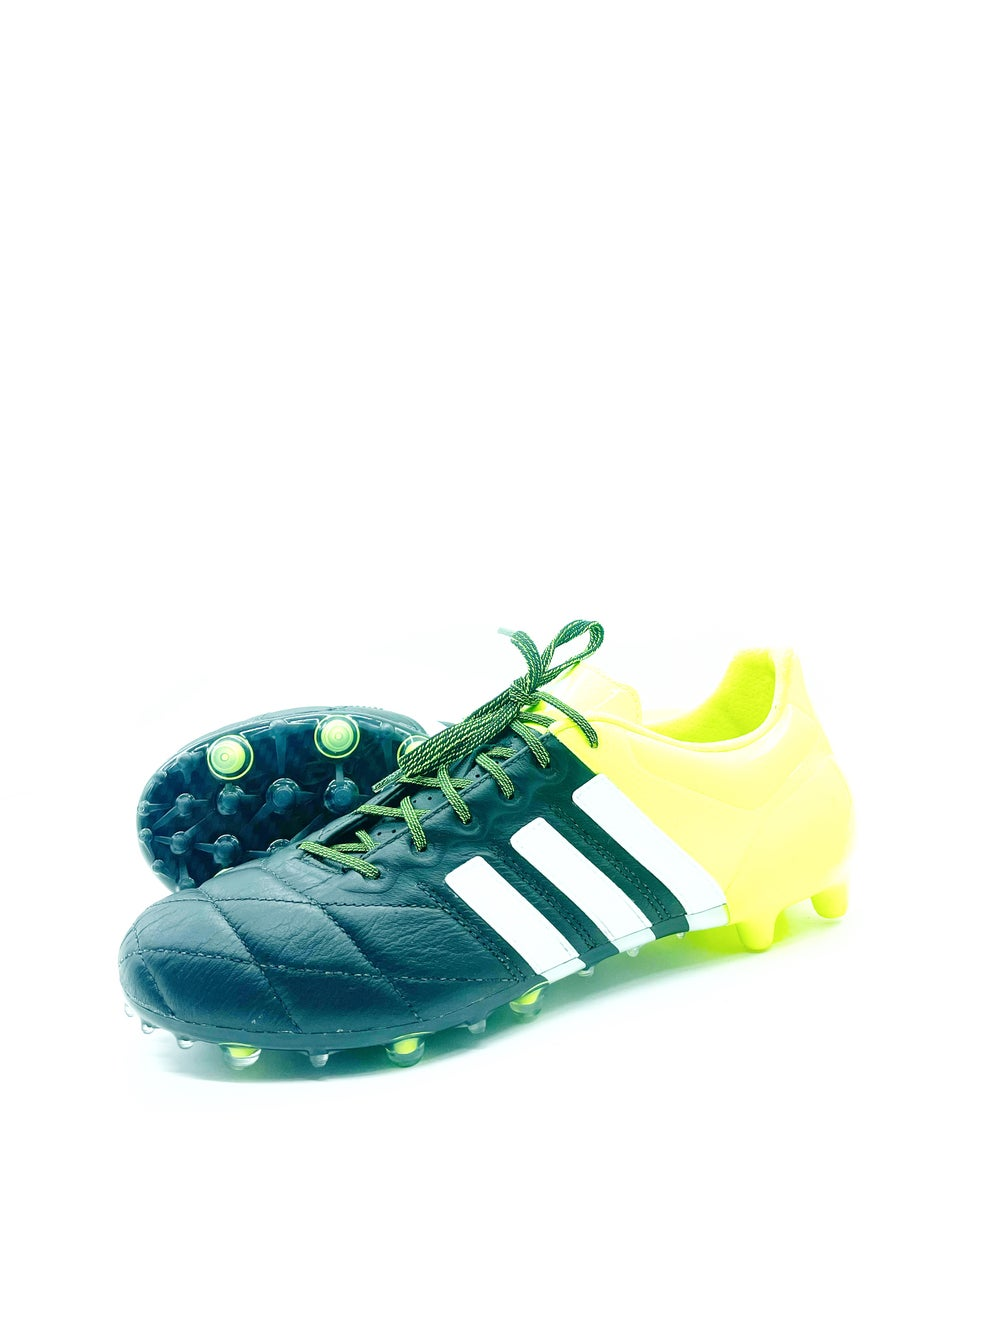 Image of Adidas Ace 15.1 FG black